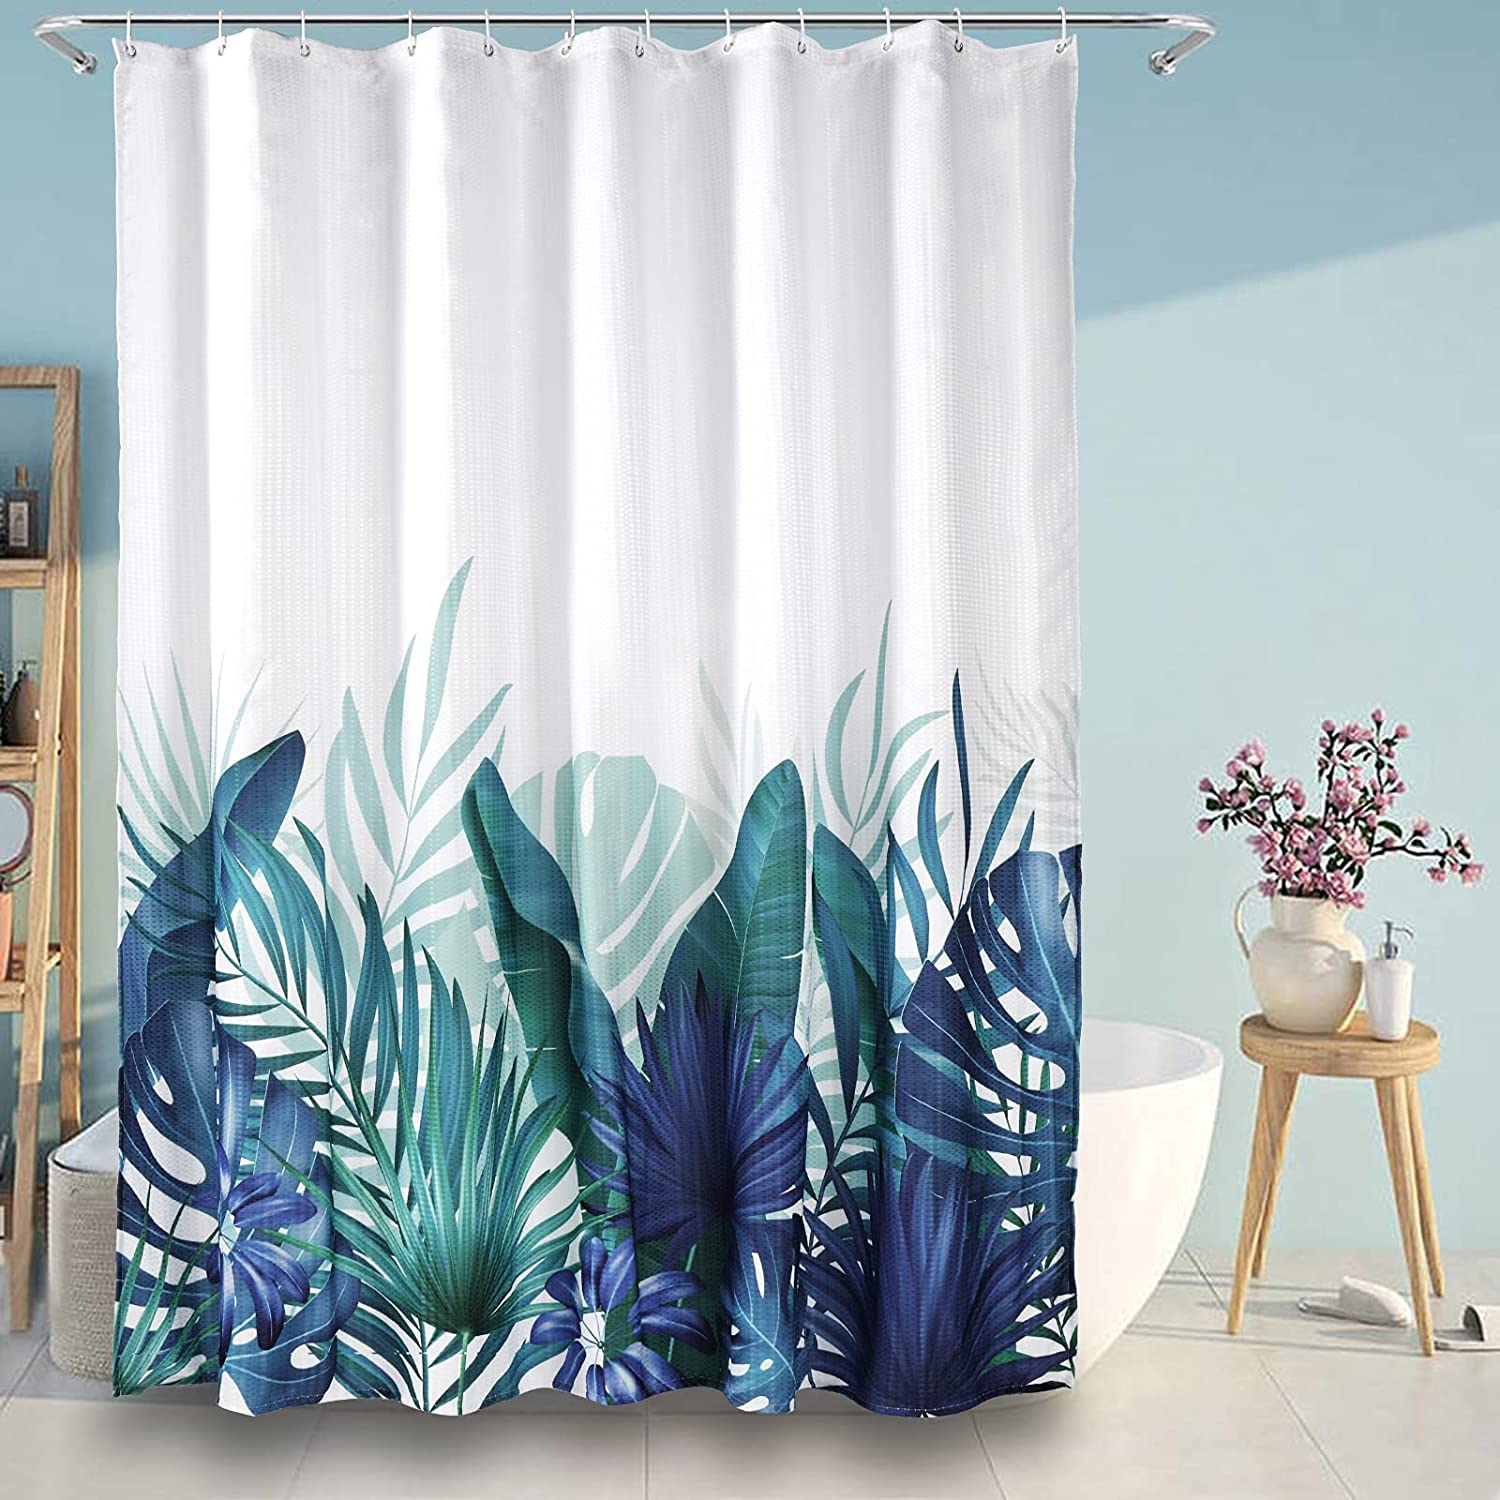 Shower Curtains for New products, world's highest quality popular! Bathroom Forest Curtain Nature with Max 54% OFF